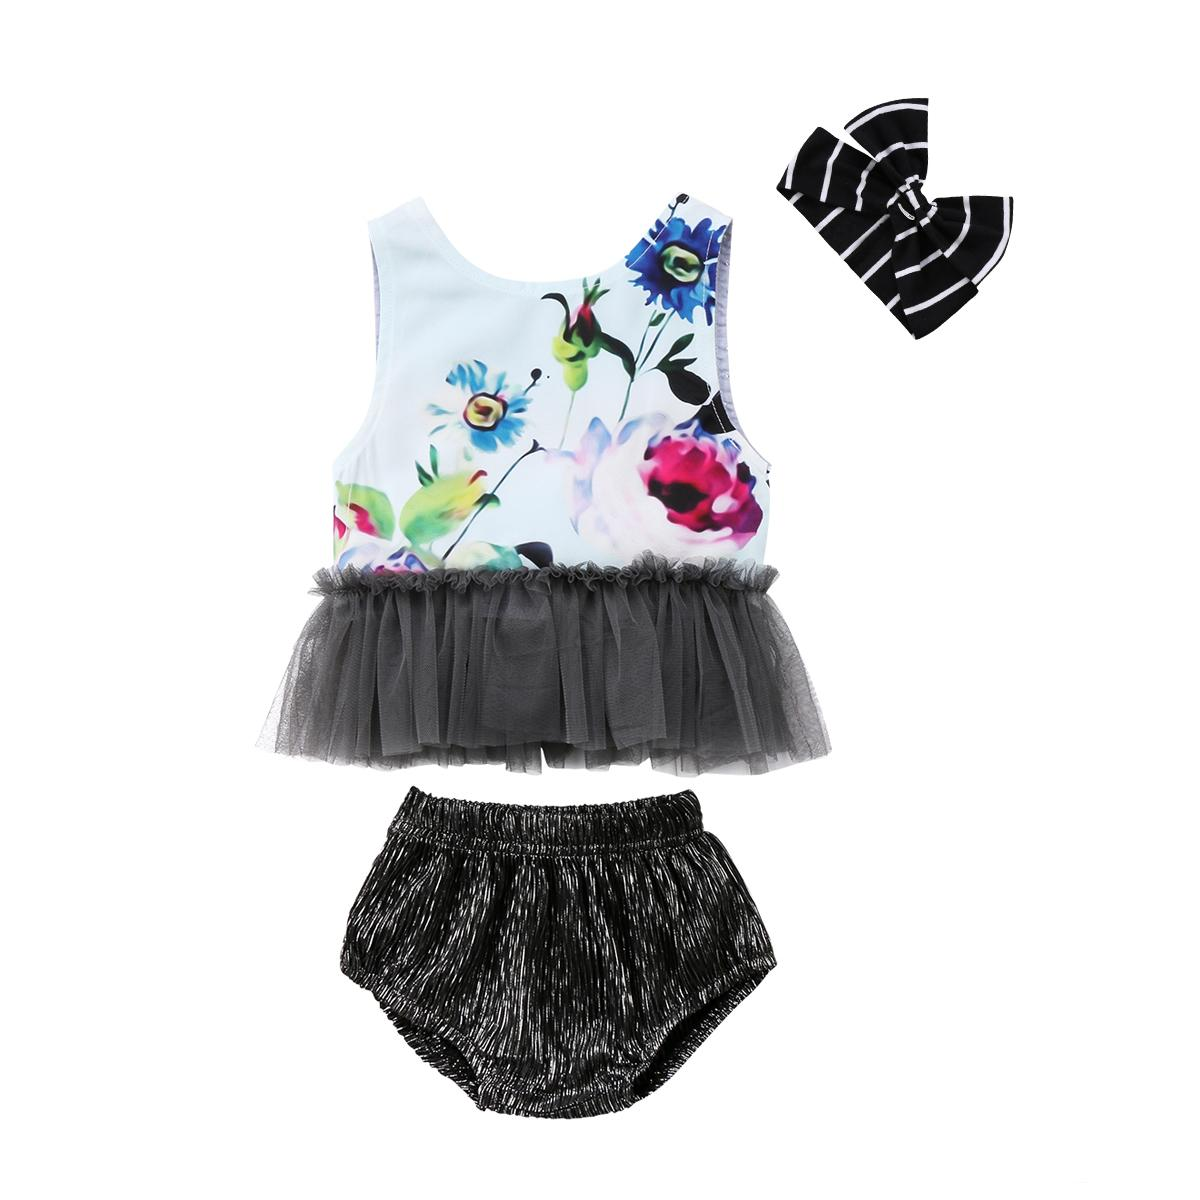 a300987372d 2019 2018 Kids Baby Girl Outfit Sets Sleeveless Floral Shirt Patchwork T  Shirt Tops+Shorts Pant+Headband Cute Summer Set Clothes From Buycenter